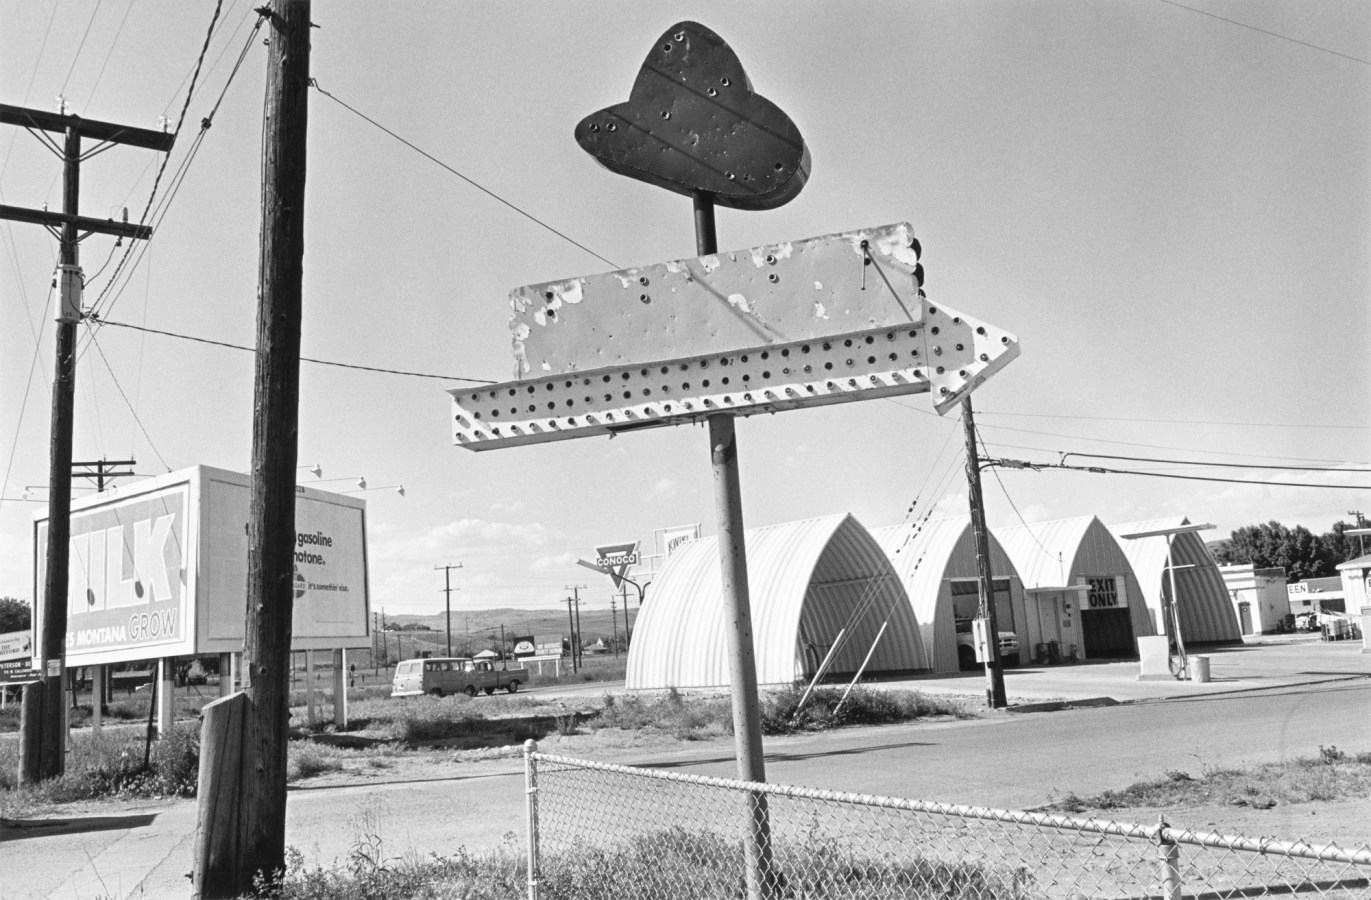 Black-and-white photograph of an old weathered neon sign shaped like a cowboy hat with an arrow pointing right